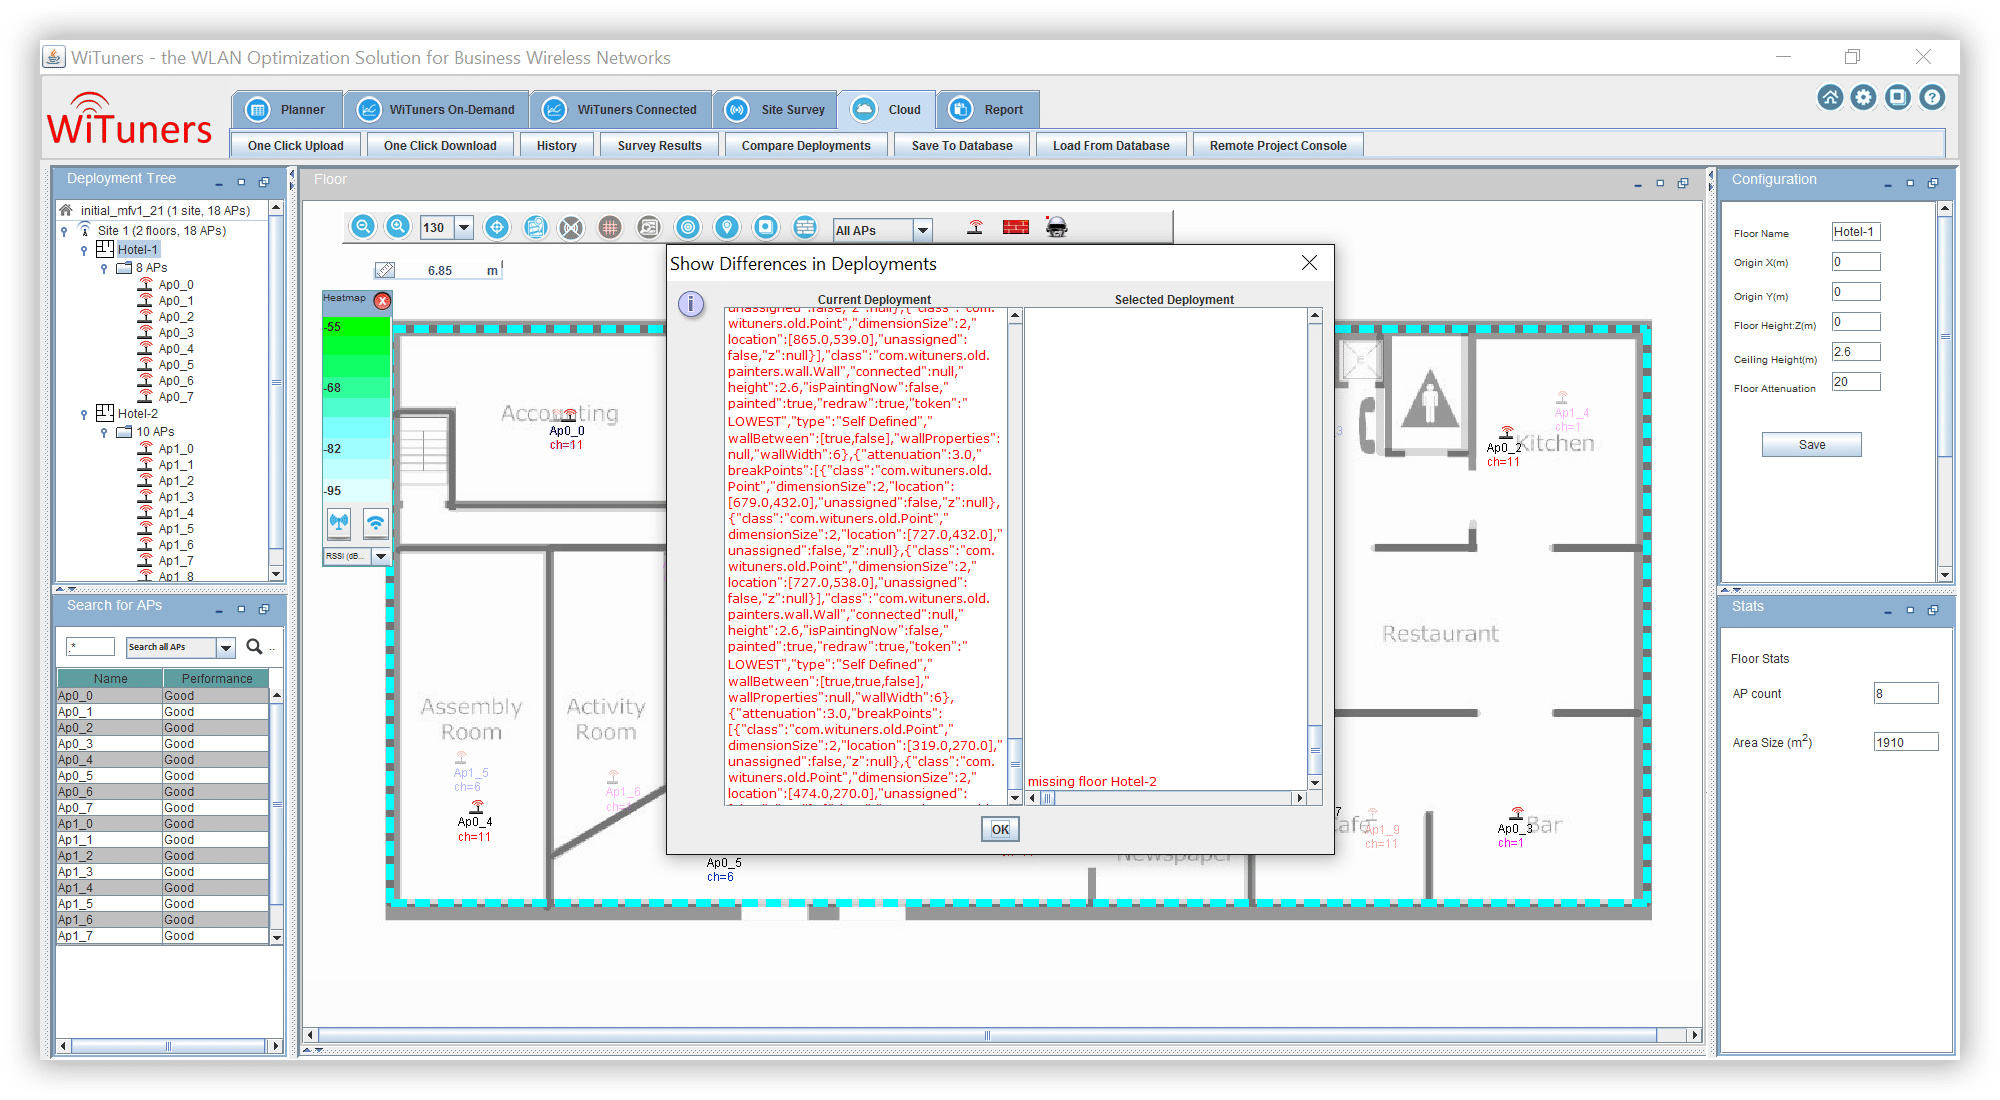 Compare differences in revisions of a deployment plan in WiFi planning software